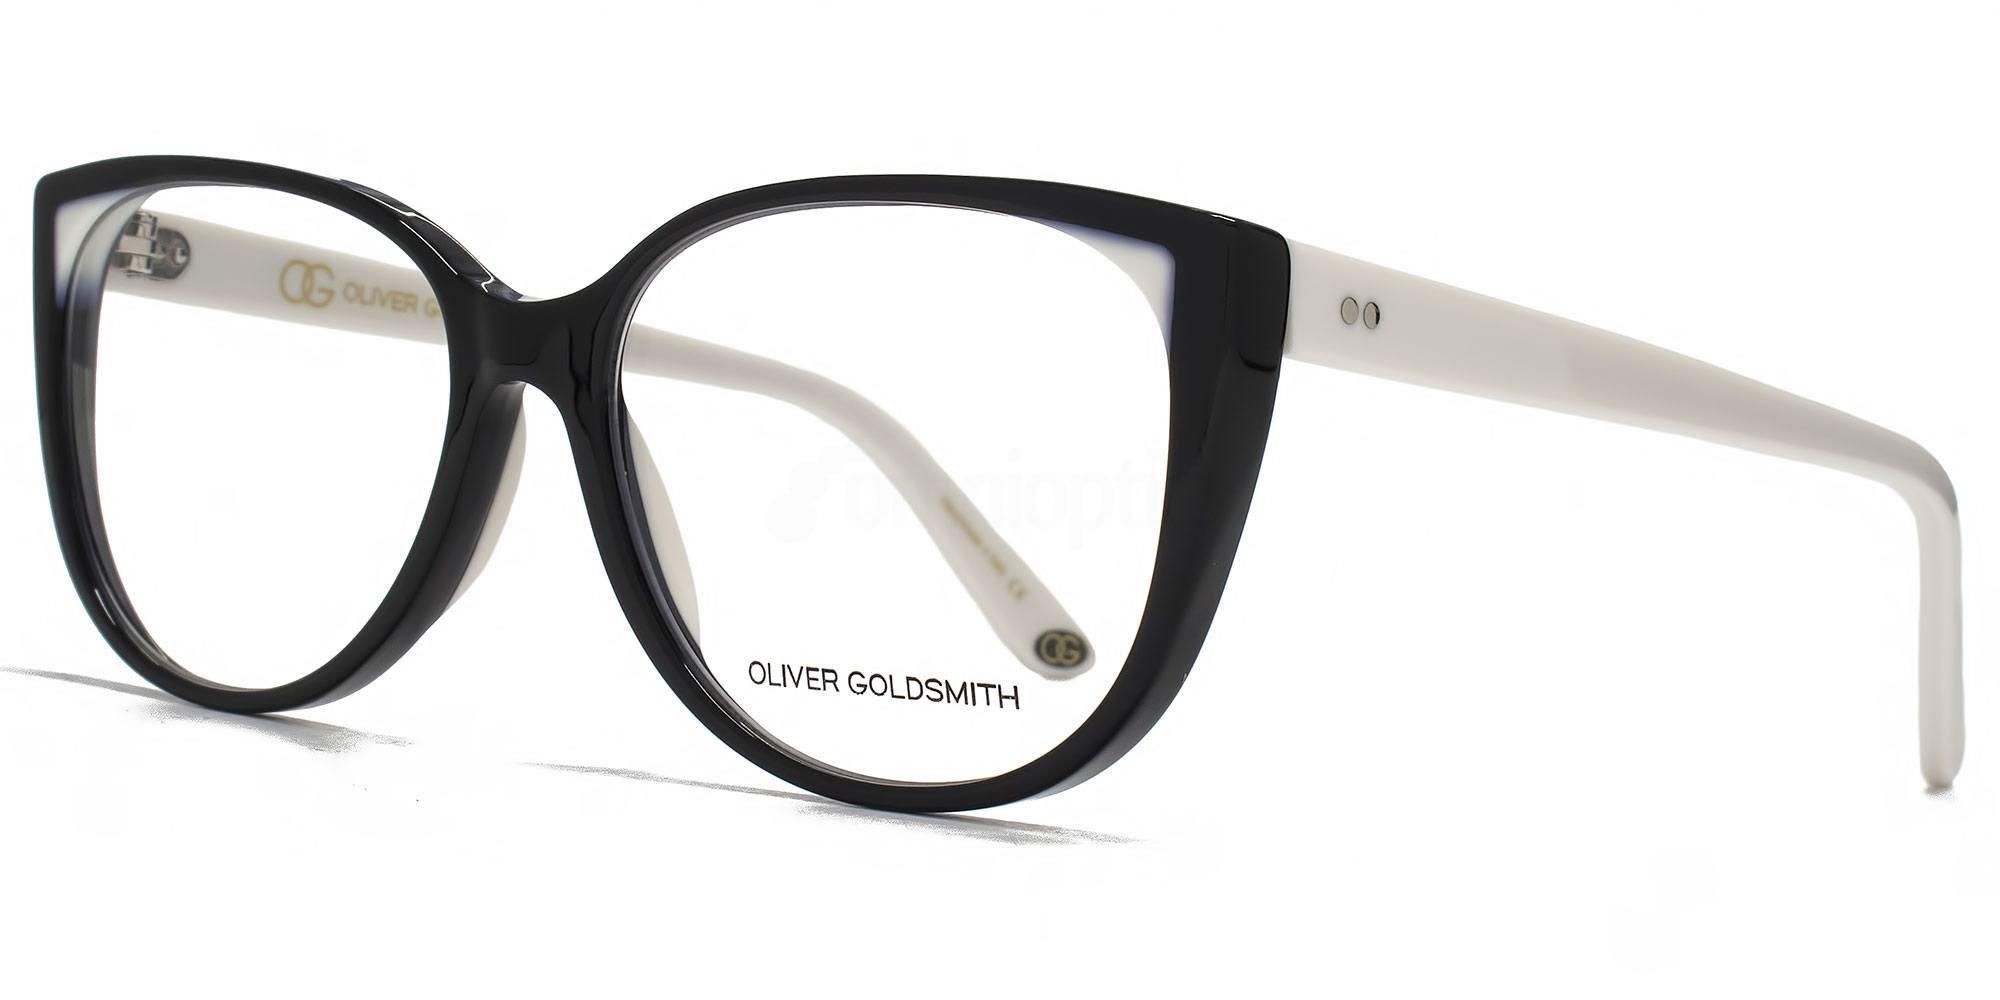 01 OLI021 - LILLY , Oliver Goldsmith